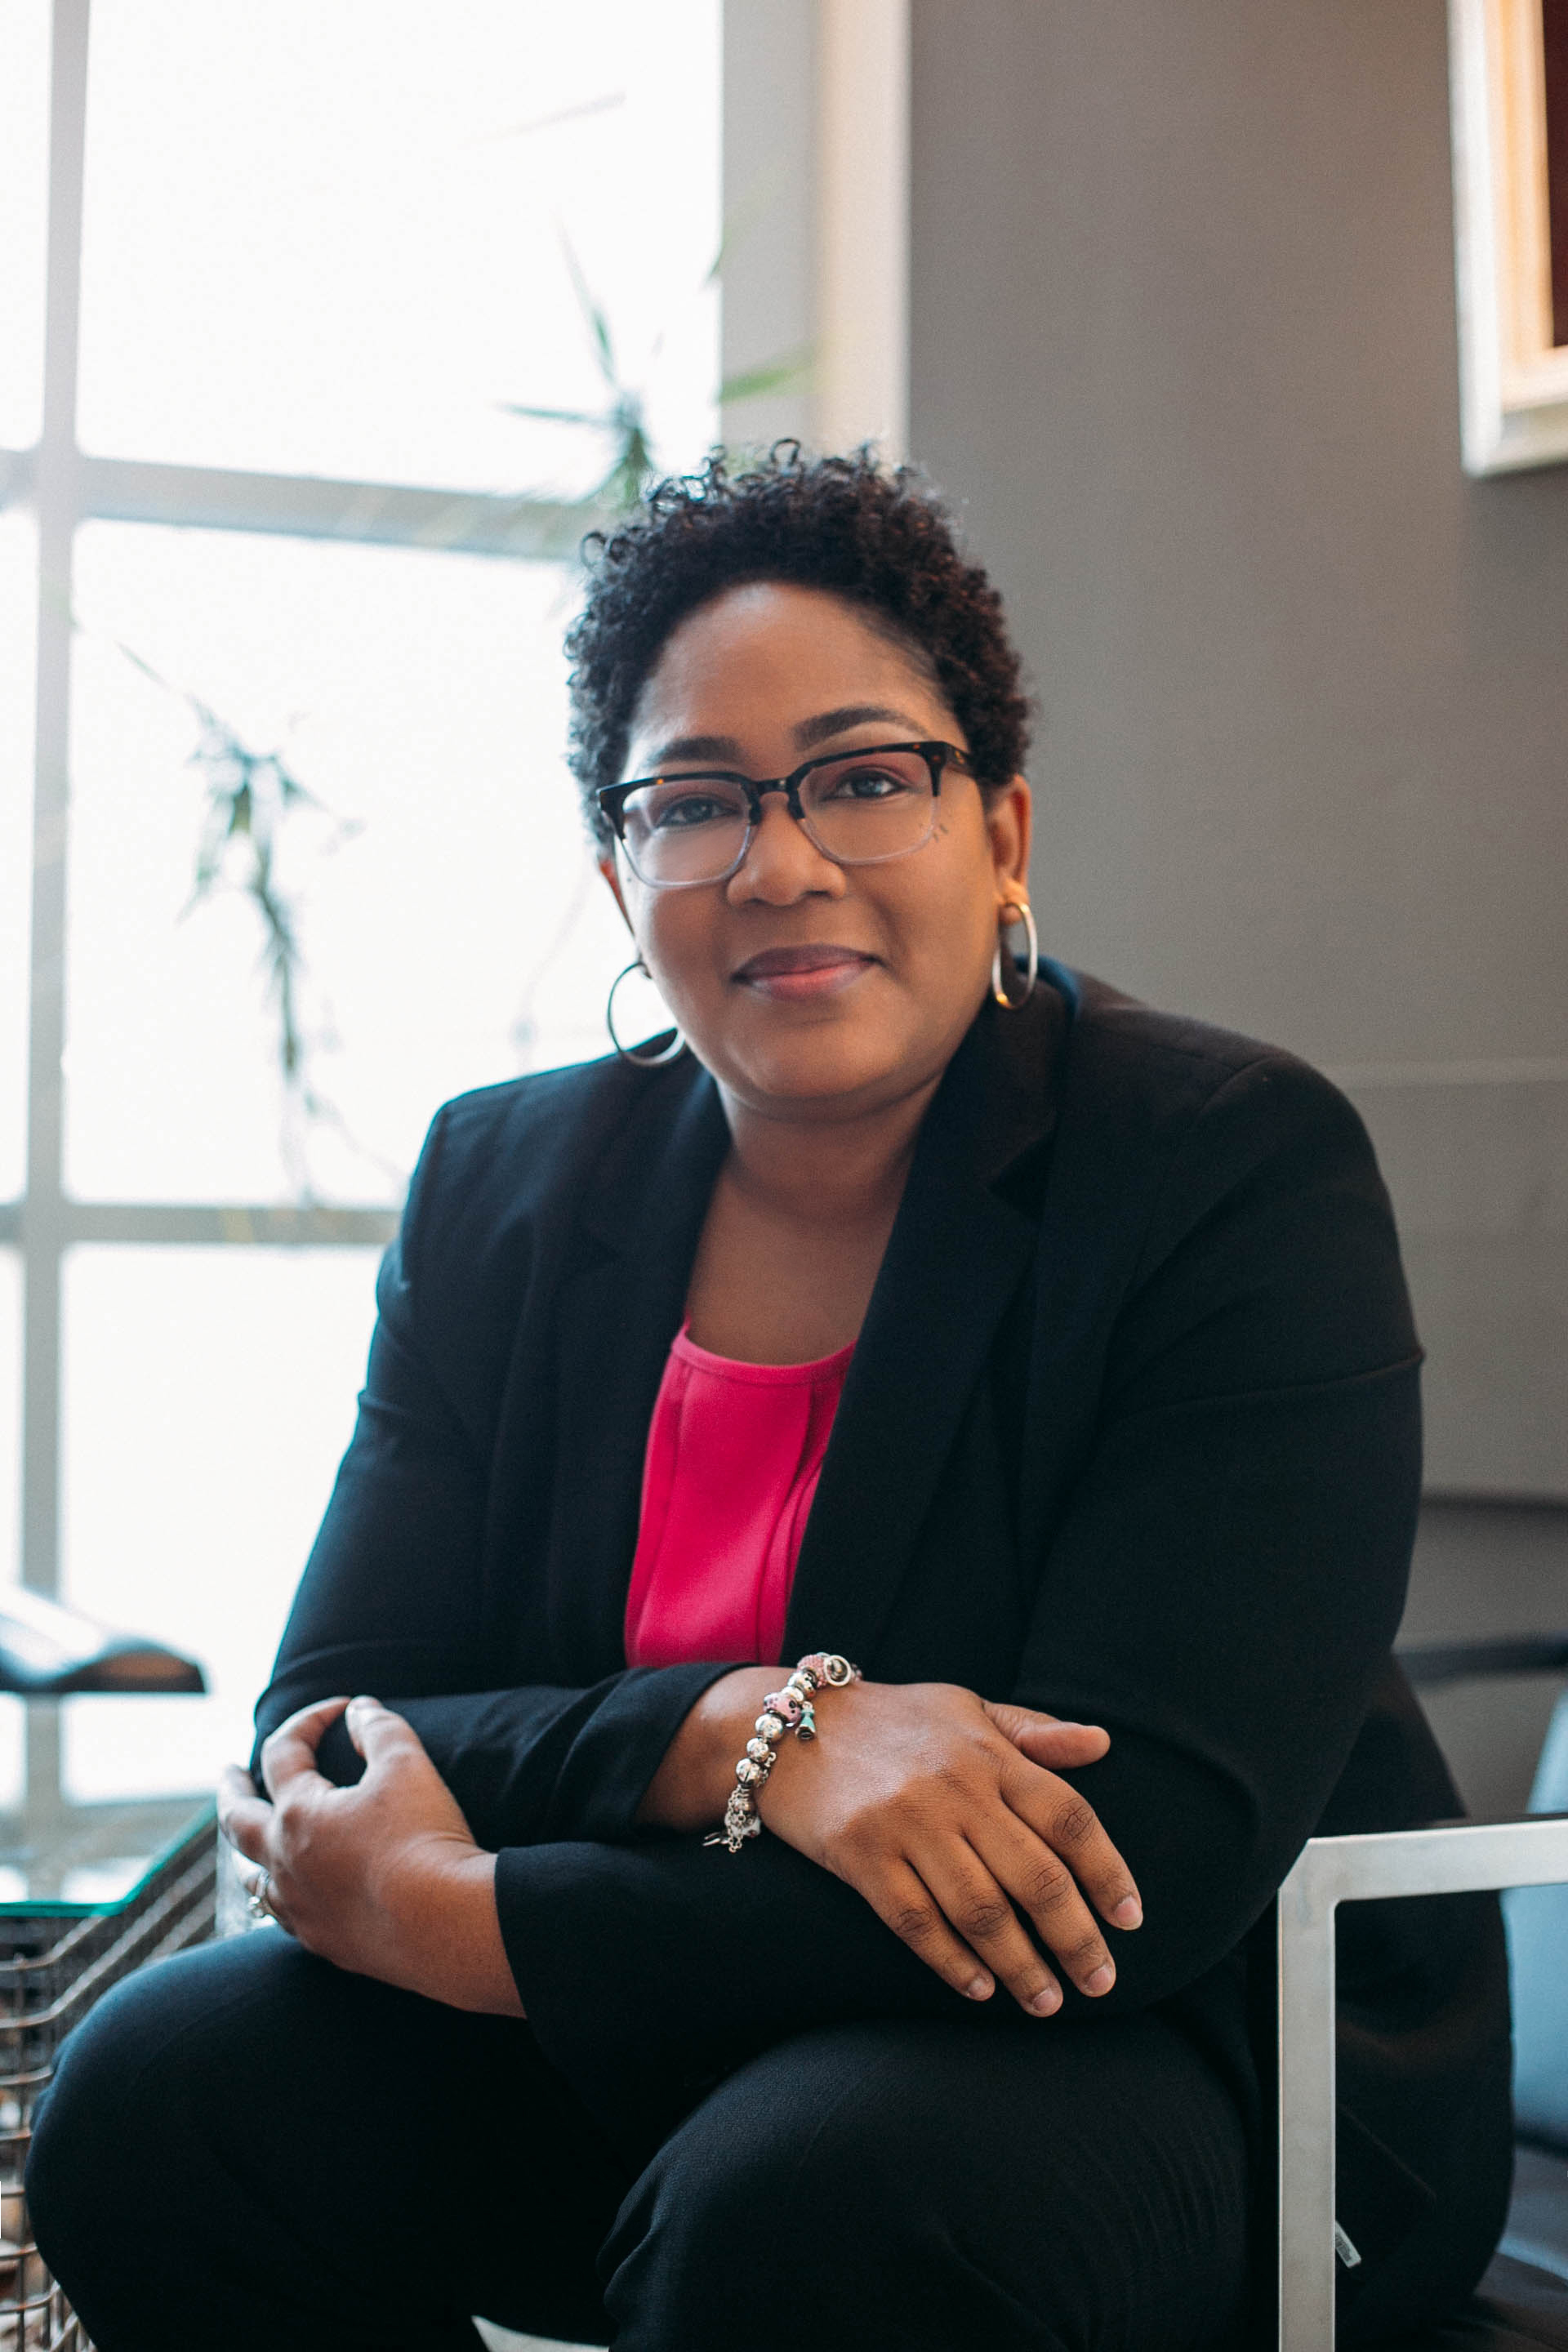 Demetra Caston, MS, LPC, NCC - Demetra Caston is a Licensed Professional and Nationally Certified Counselor. She has been a counselor for four years and is currently working to earn her certification for Trauma-Focused Cognitive Behavioral Therapy (TF-CBT). Demetra attended Texas Woman's University, where she earned a Bachelor of Science in Family Studies and Master of Science in Counseling and Development. She has worked with teenagers to overcome many issues including but not limited to low self-esteem, self-harming behaviors, trauma from sexual assault and coping with school transitions. She has also worked with families and married couples that have challenges and are seeking practical options.Demetra utilizes a variety of evidence based techniques including Cognitive Behavioral Therapy (CBT) to find the best solution for her clients. She is committed to finding the best solution for your issue.